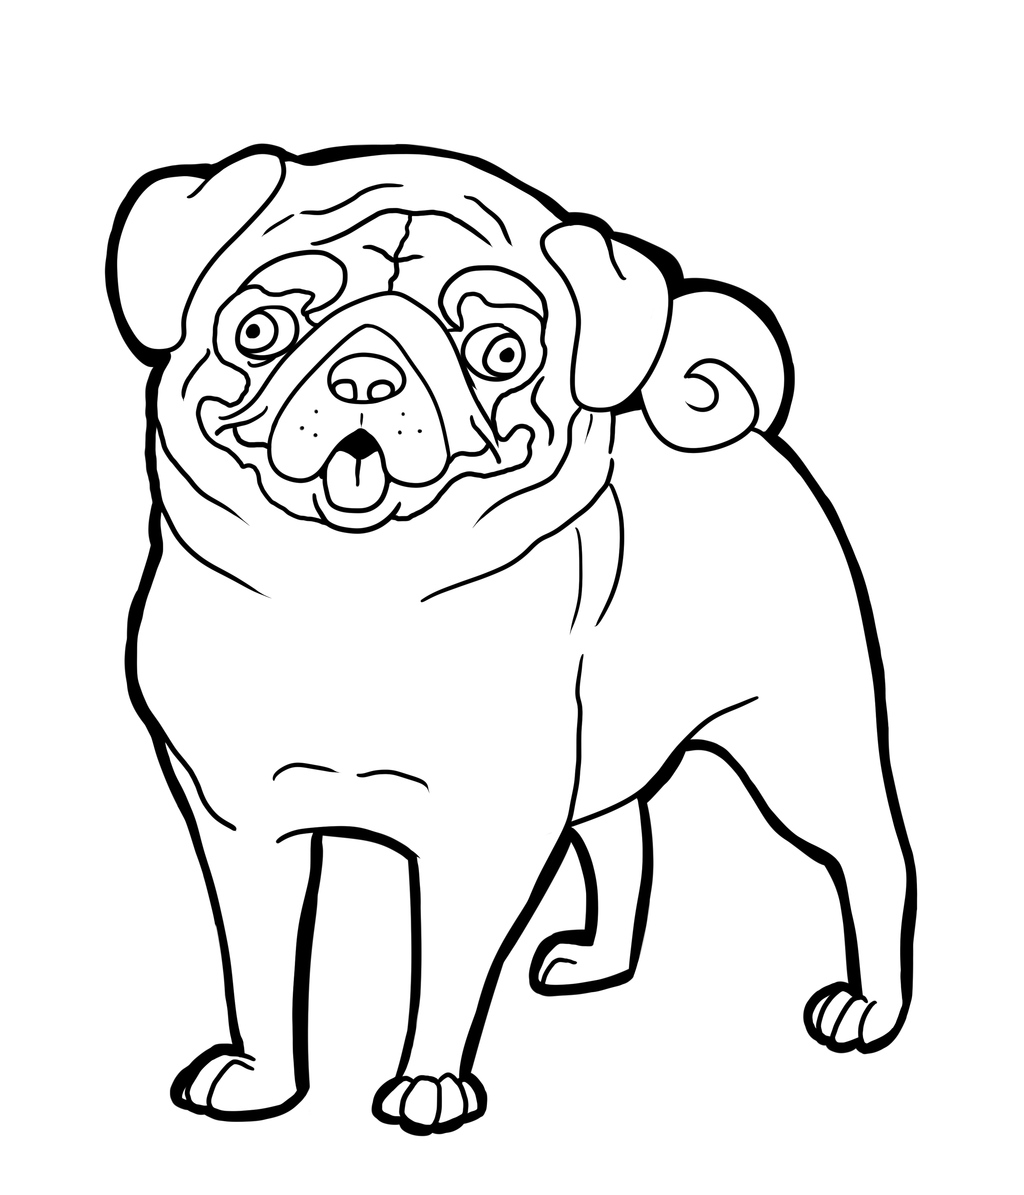 dog pictures to print out boxer dog cute little pug coloring pages puppy pictures to dog out pictures to print